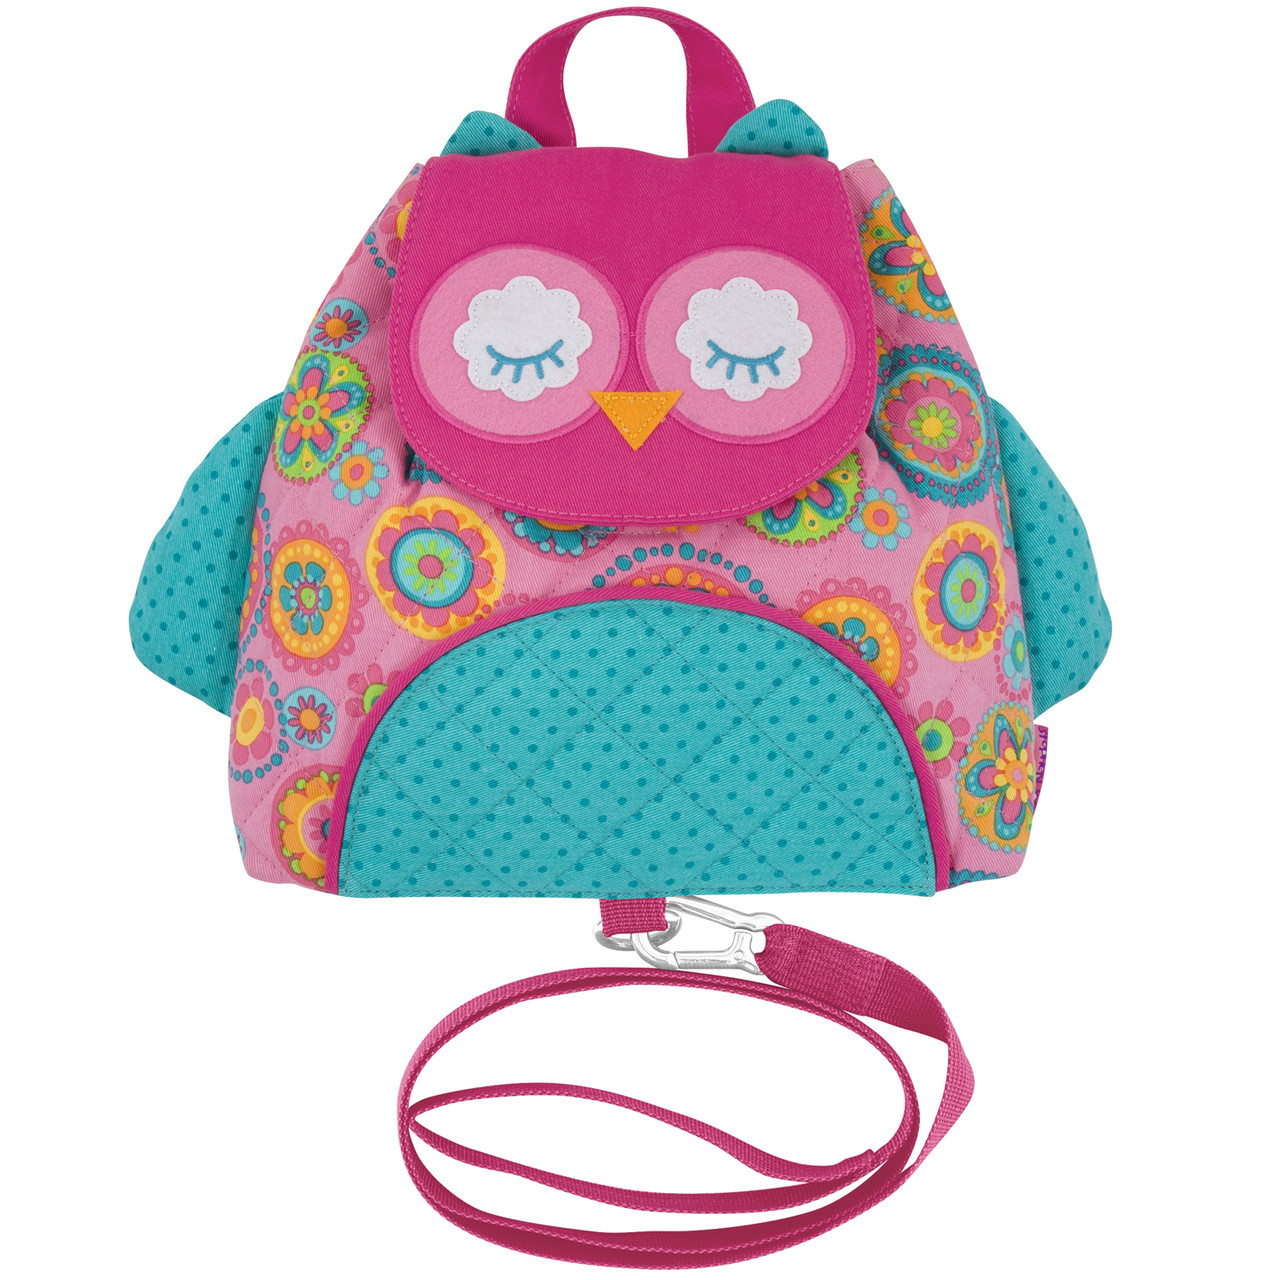 Little Buddy Bag with Safety Harness - Owl - Stephen Joseph 6ef487249f34d